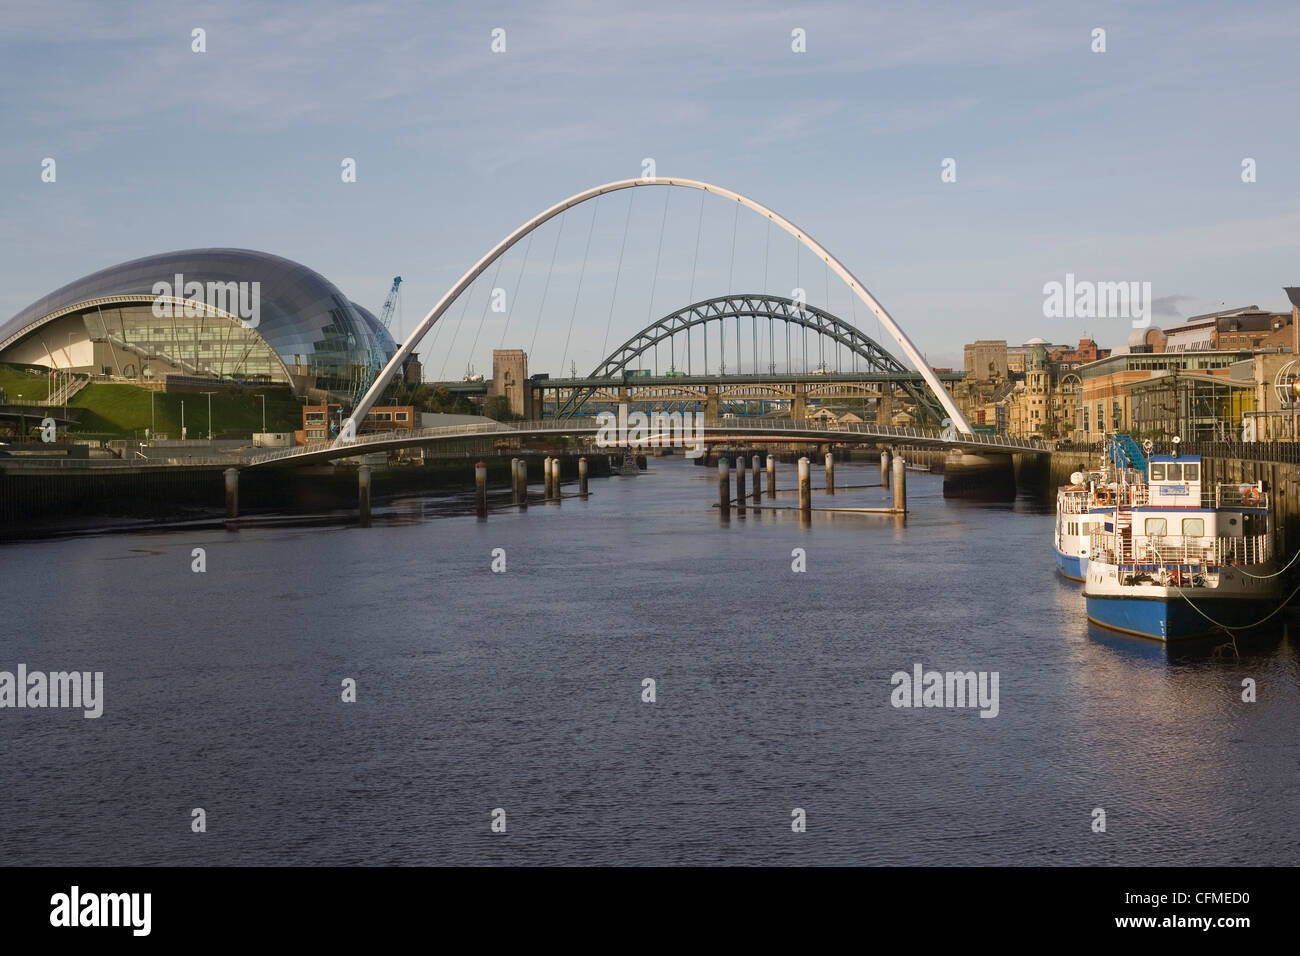 River Tyne with bridges and Sage Hall, Newcastle/Gateshead, Tyne and Wear, England, United Kingdom, Europe - Stock Image